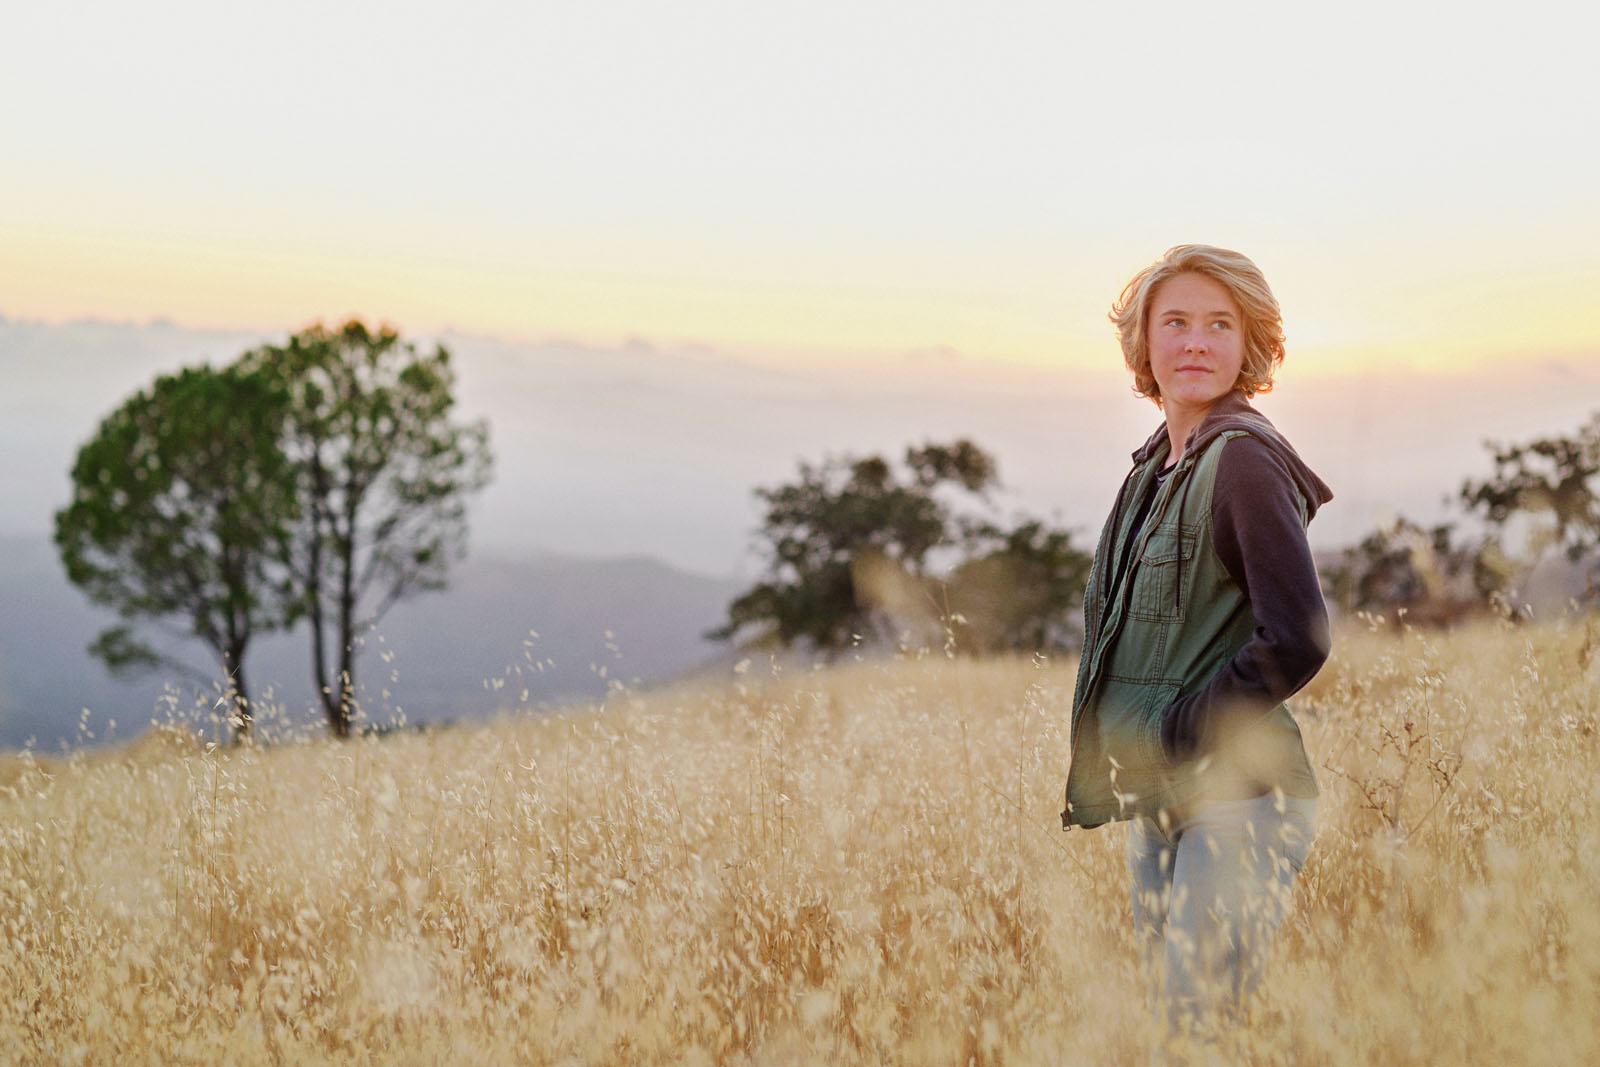 photo of girl standing in a field by Michelle Turner